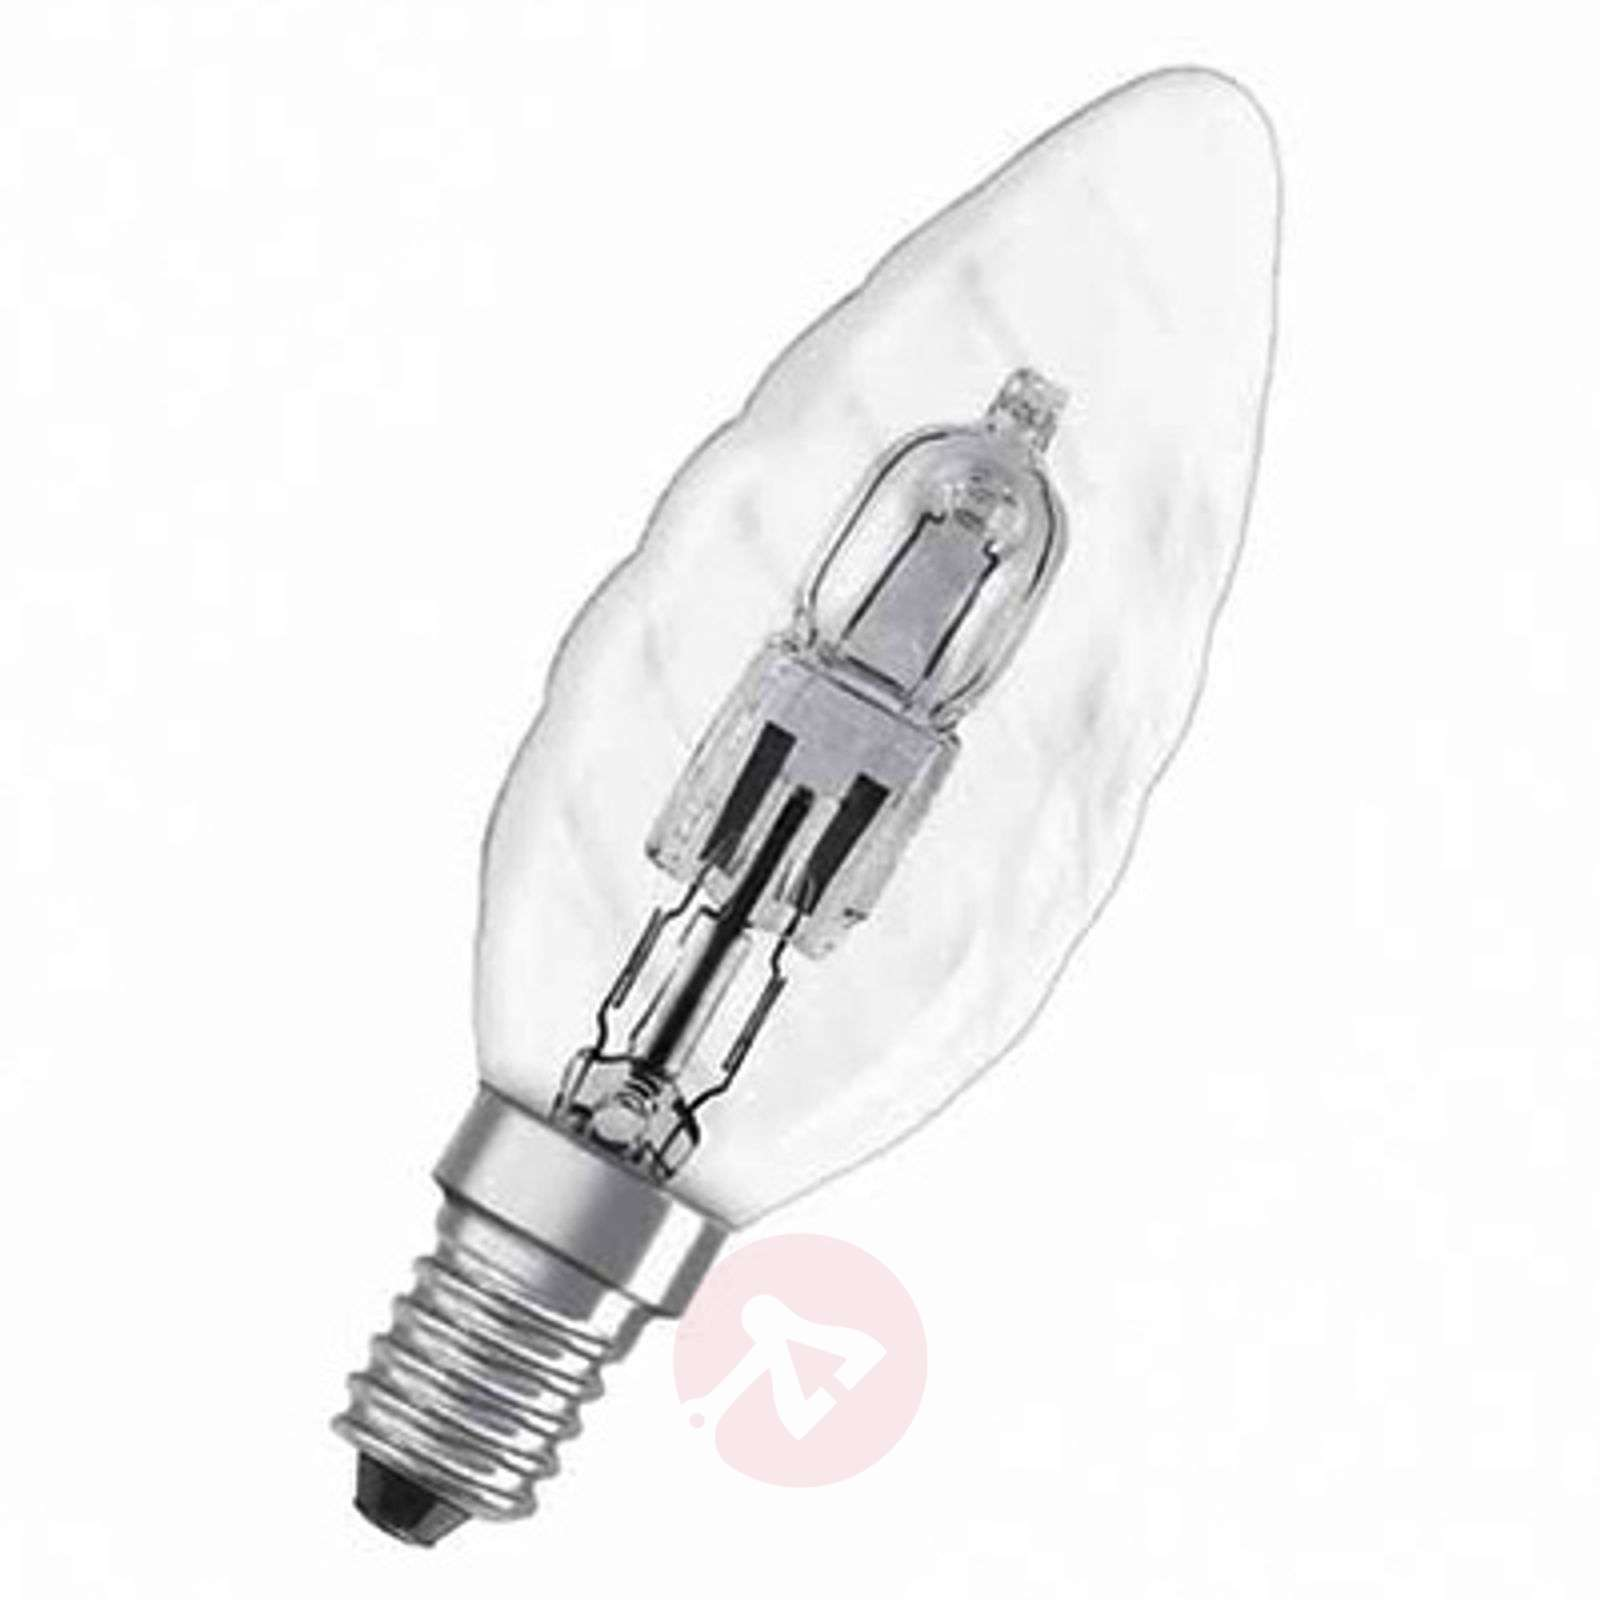 E W halogen bulb Classic BW candle twisted